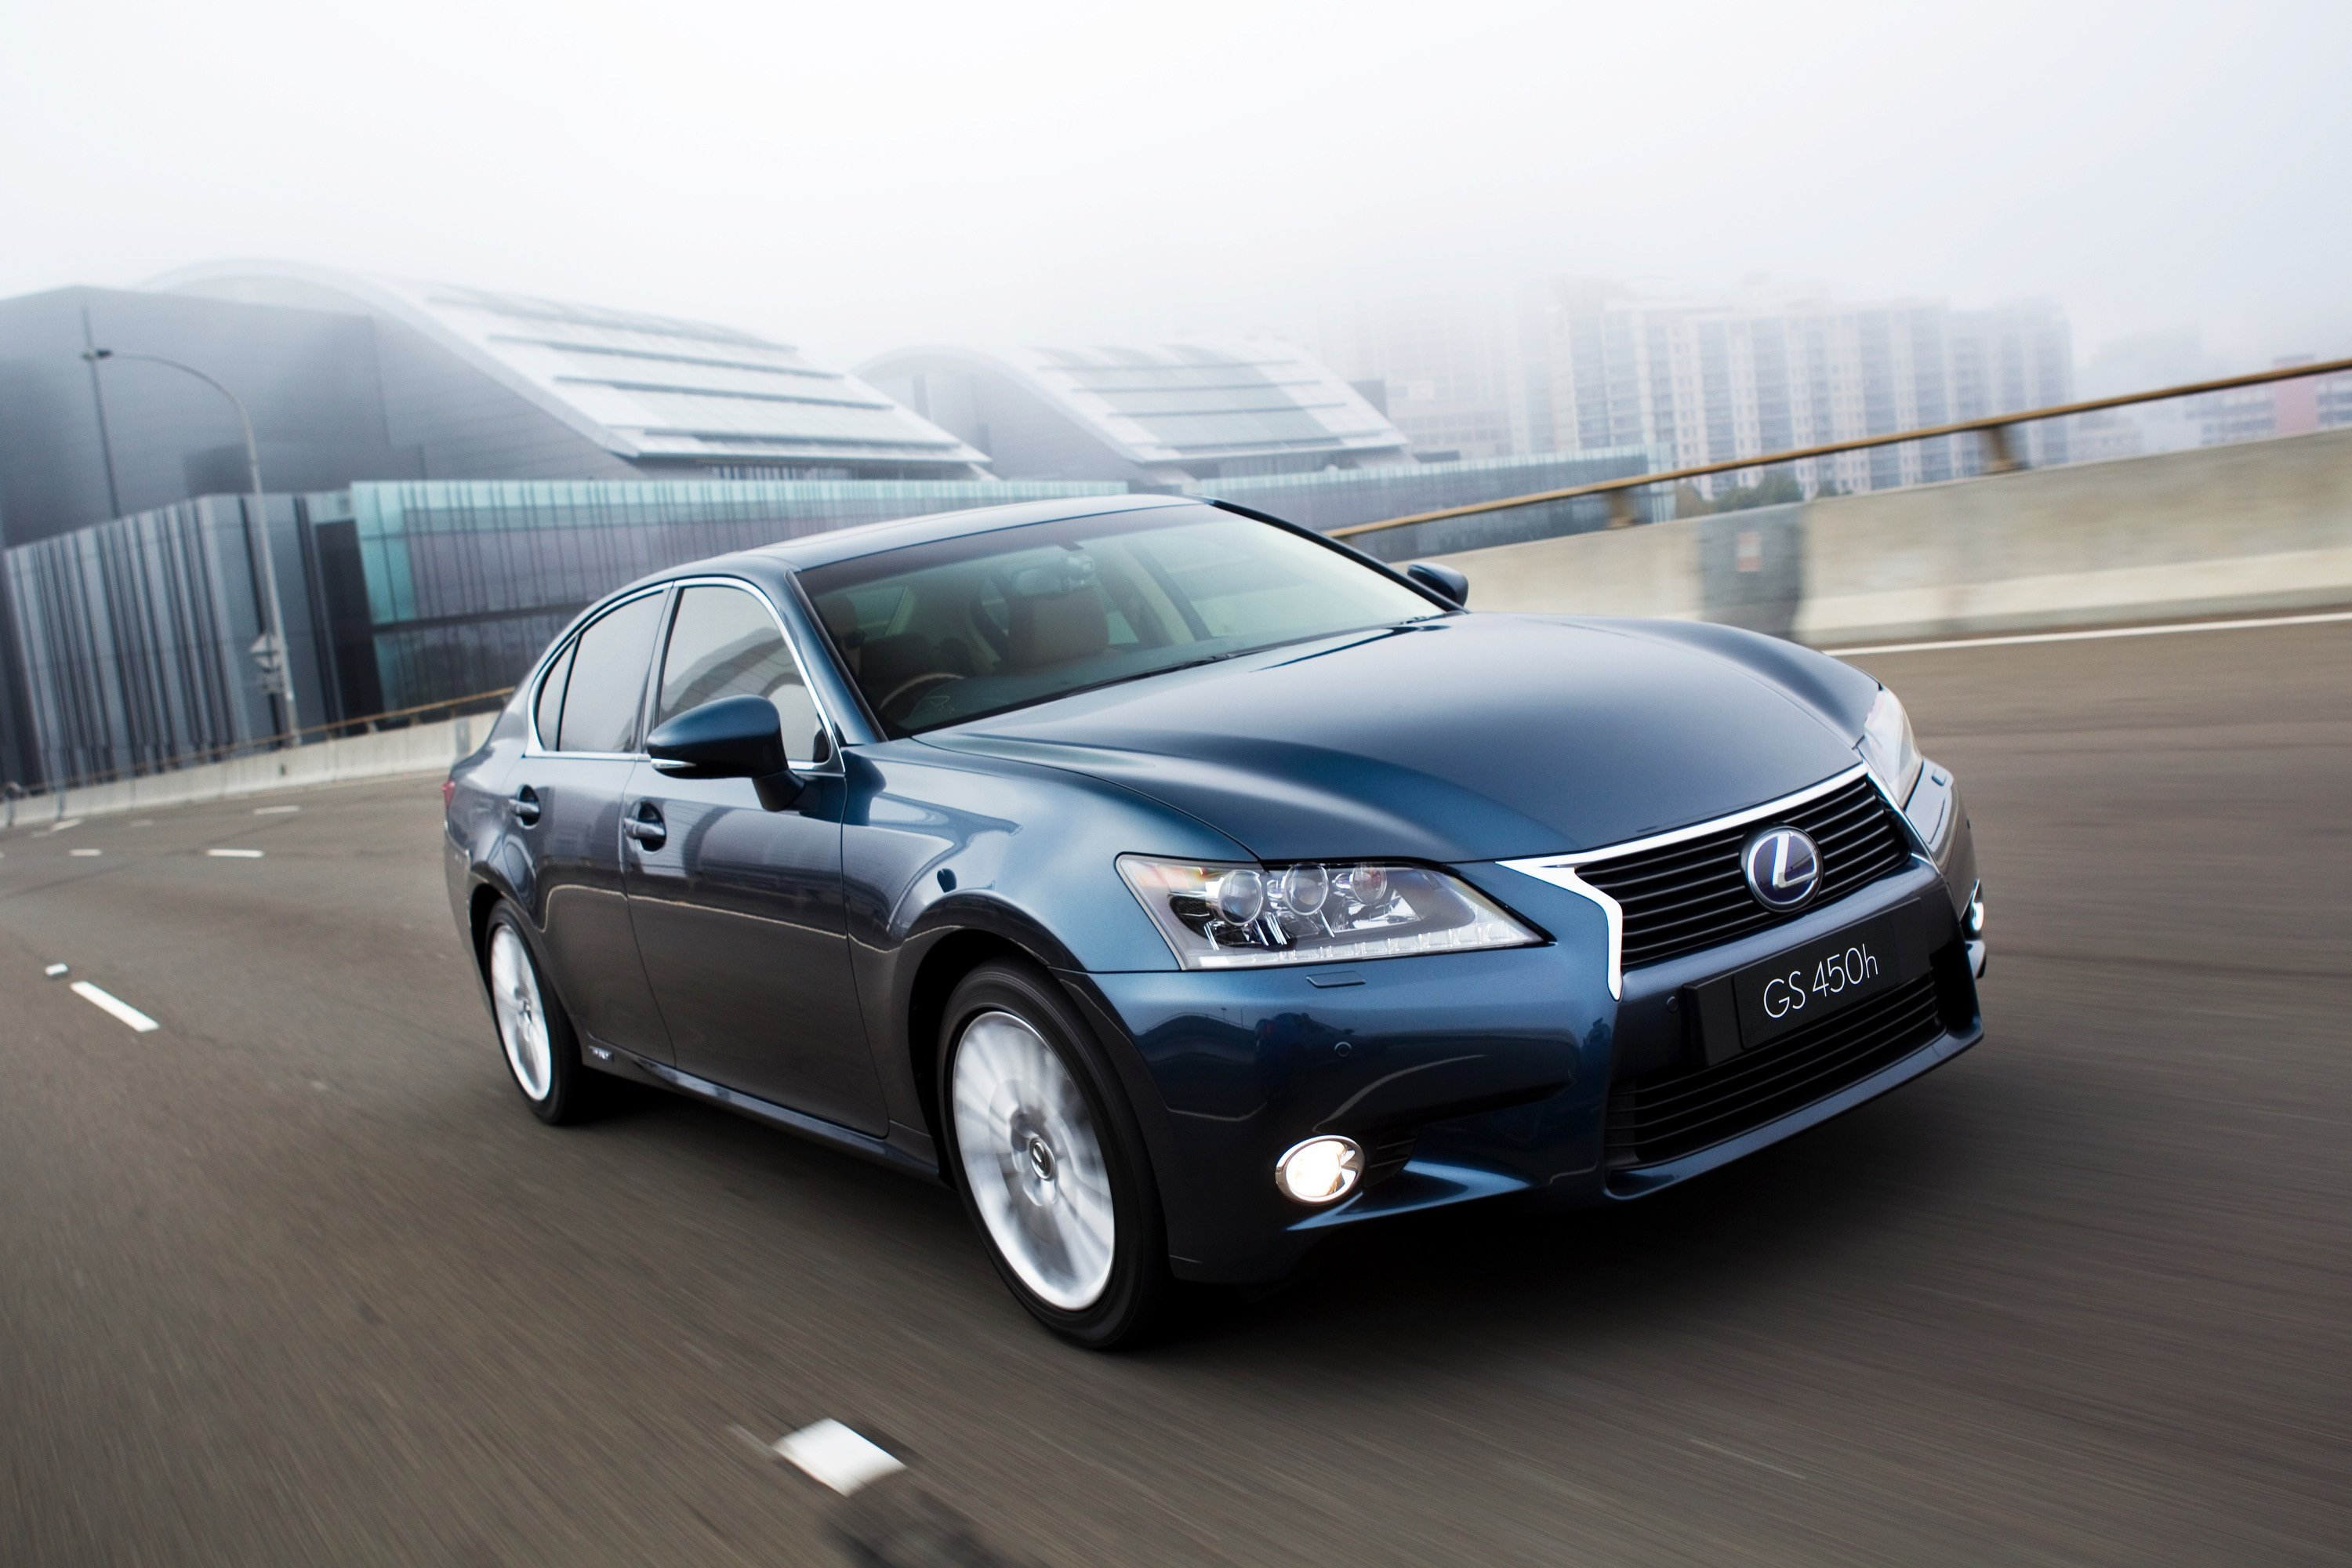 Lexus GS450h Review - Photos